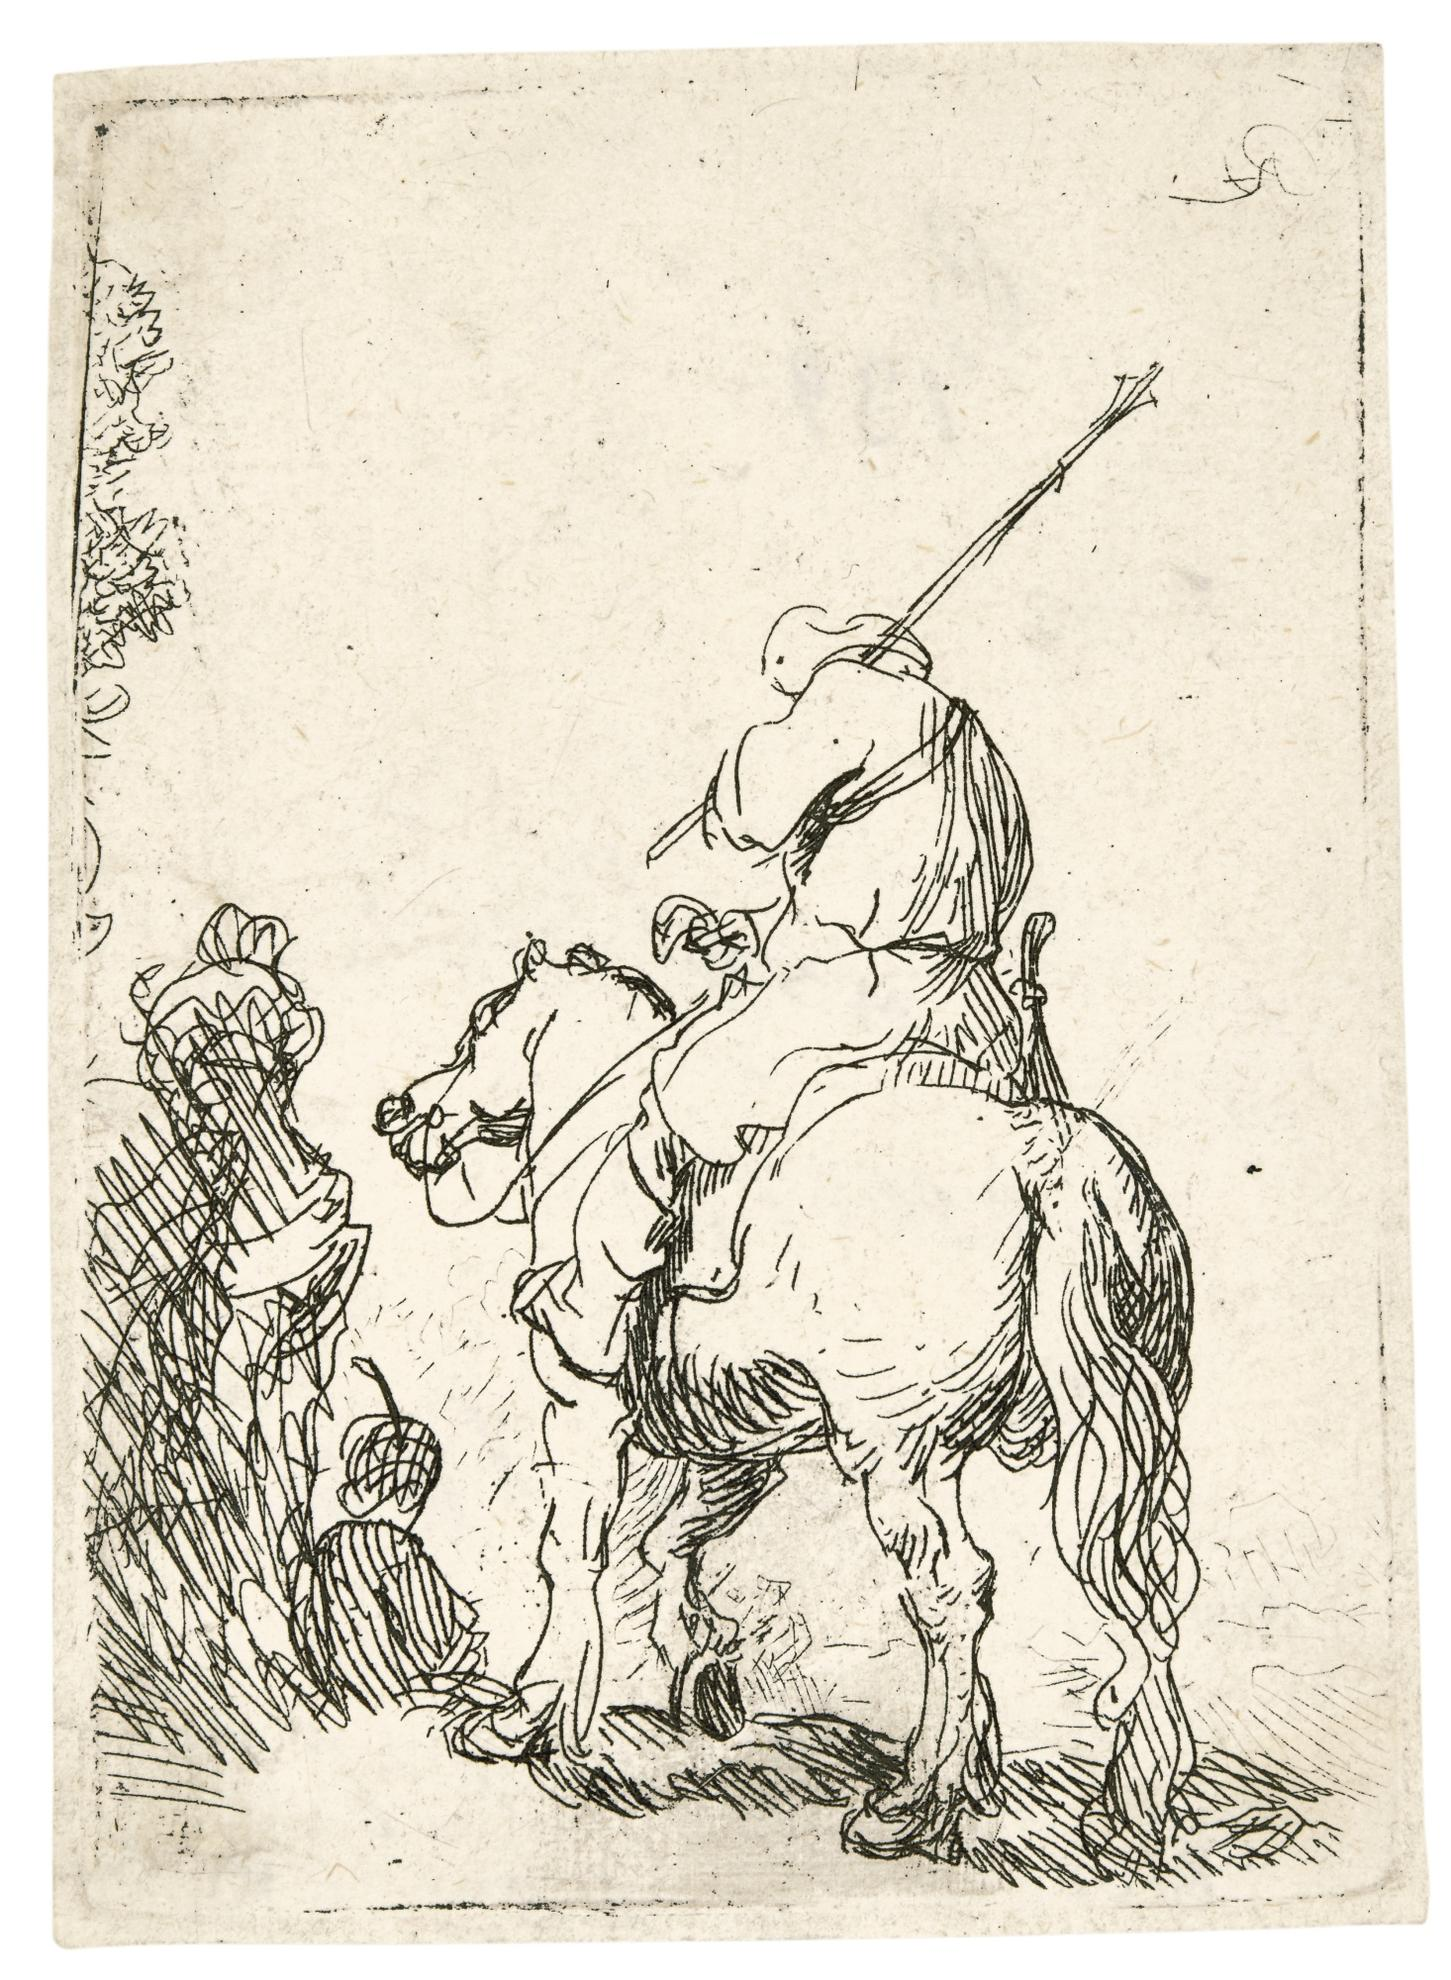 Rembrandt van Rijn-Turbaned Soldier On Horseback (B., Holl. 139; New Holl. 43; H. 99)-1629